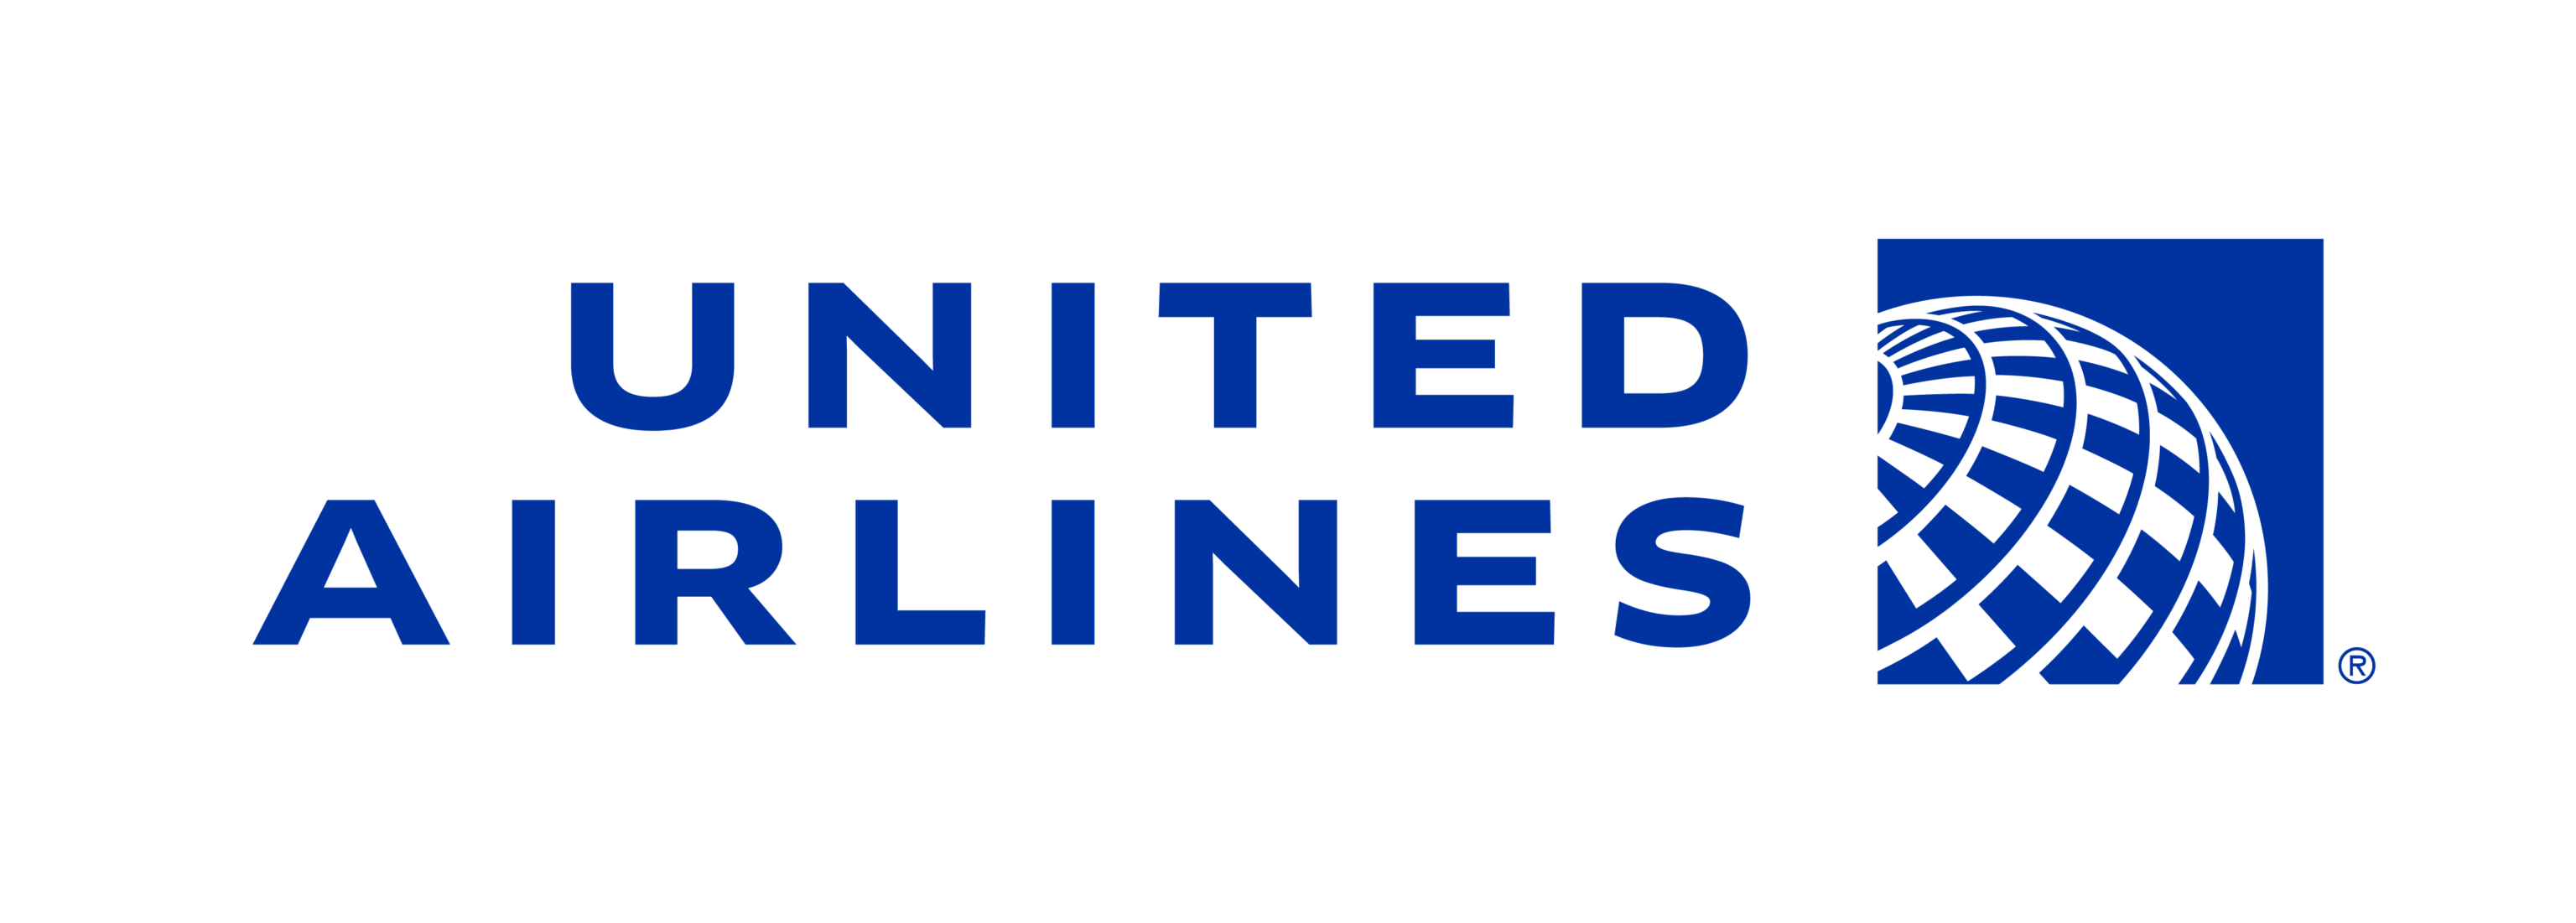 United Airlines Cabin Crew Jobs